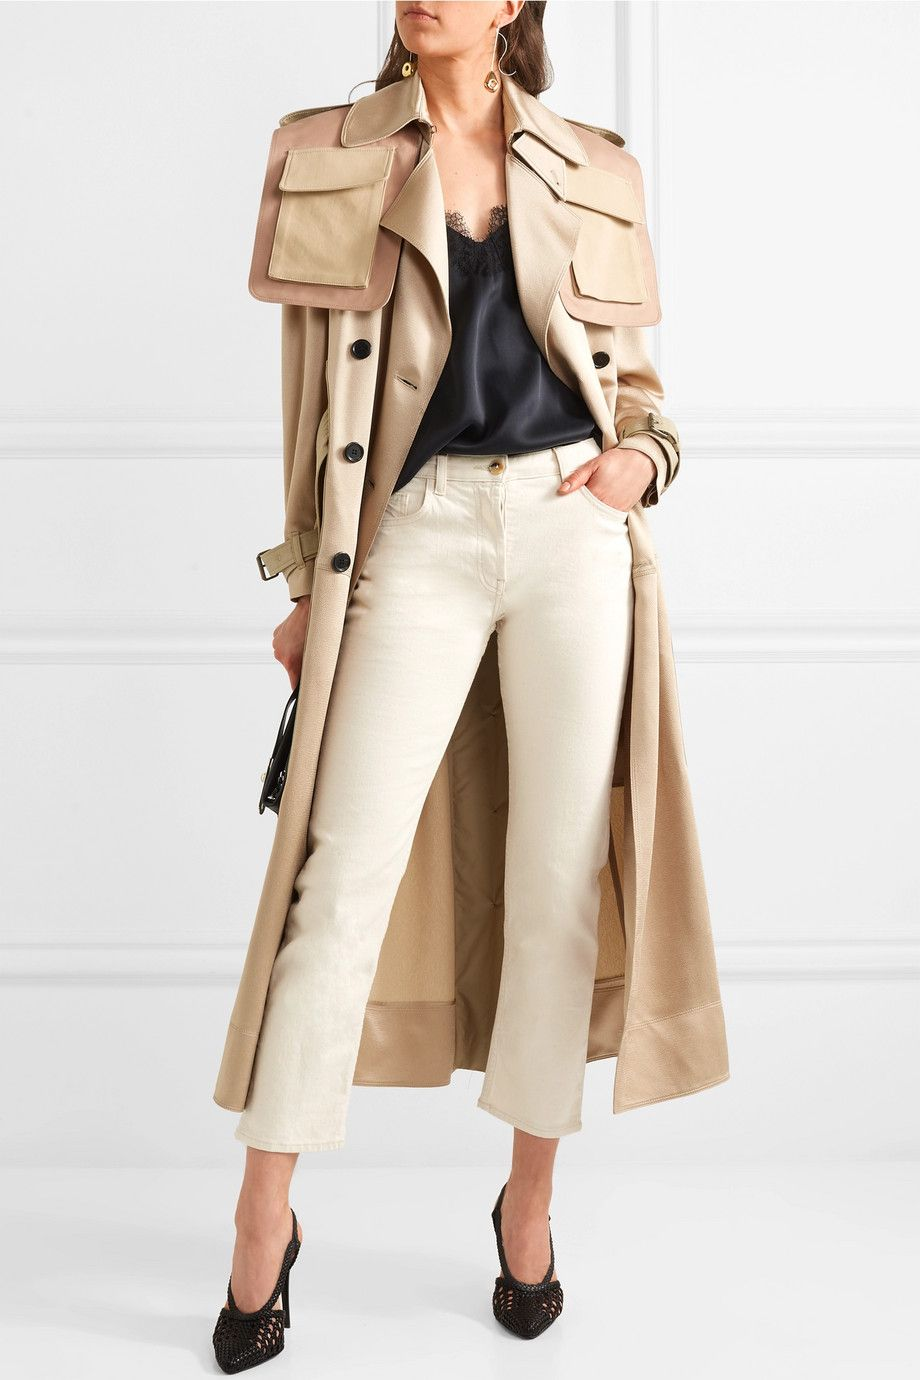 8e8b9db0e65 Valentino | Oversized patchwork hammered-satin trench coat |  NET-A-PORTER.COM